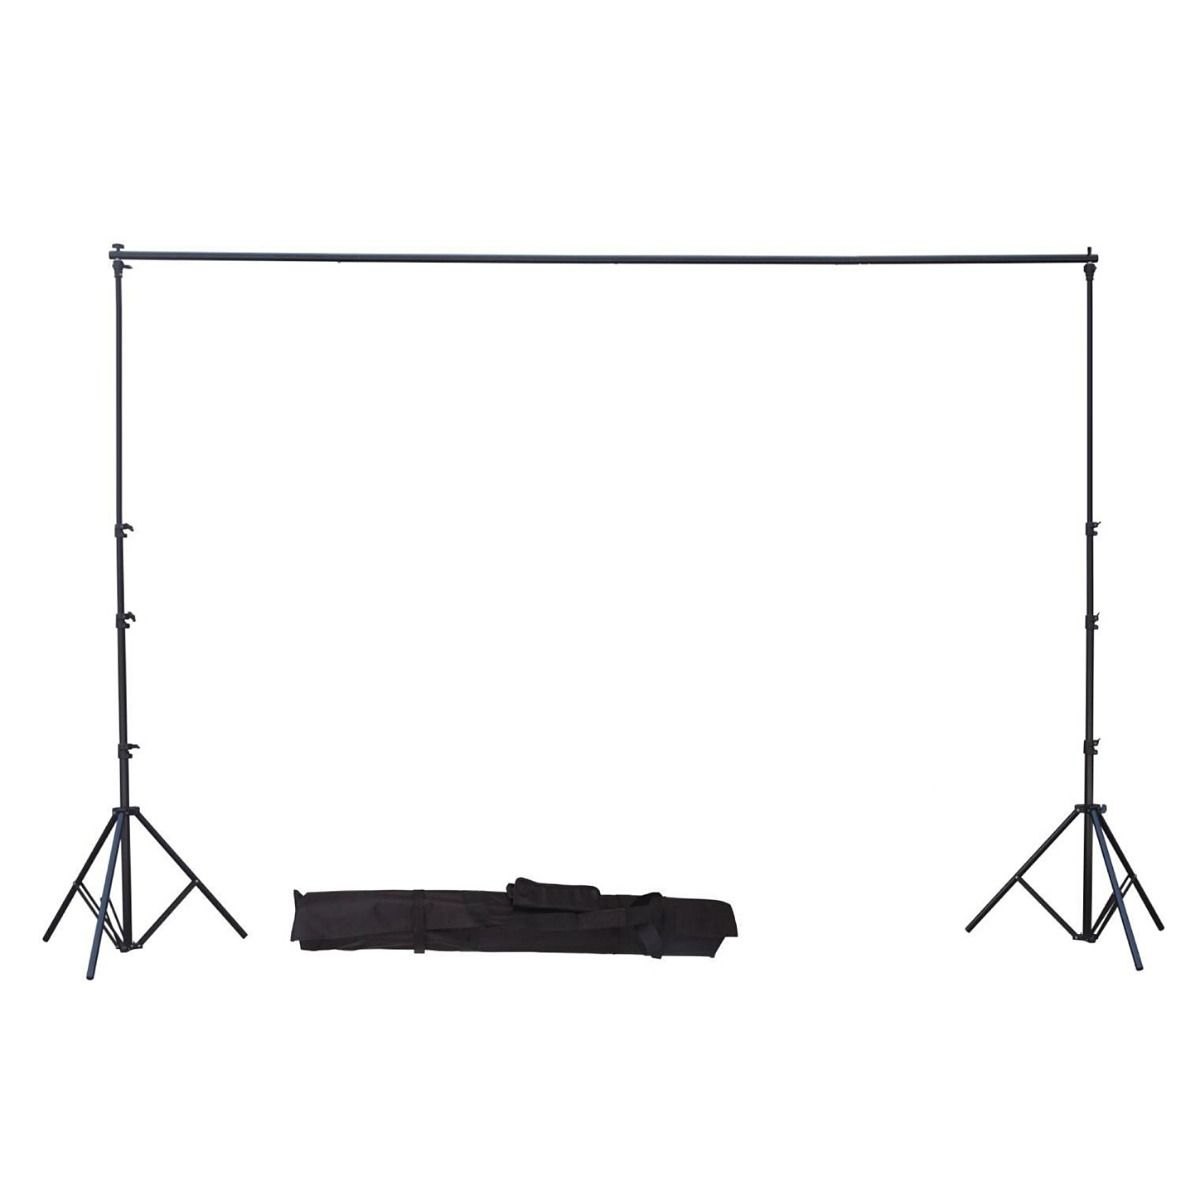 Greenscreen Setup for Videomakers - with Stands and Crossbar